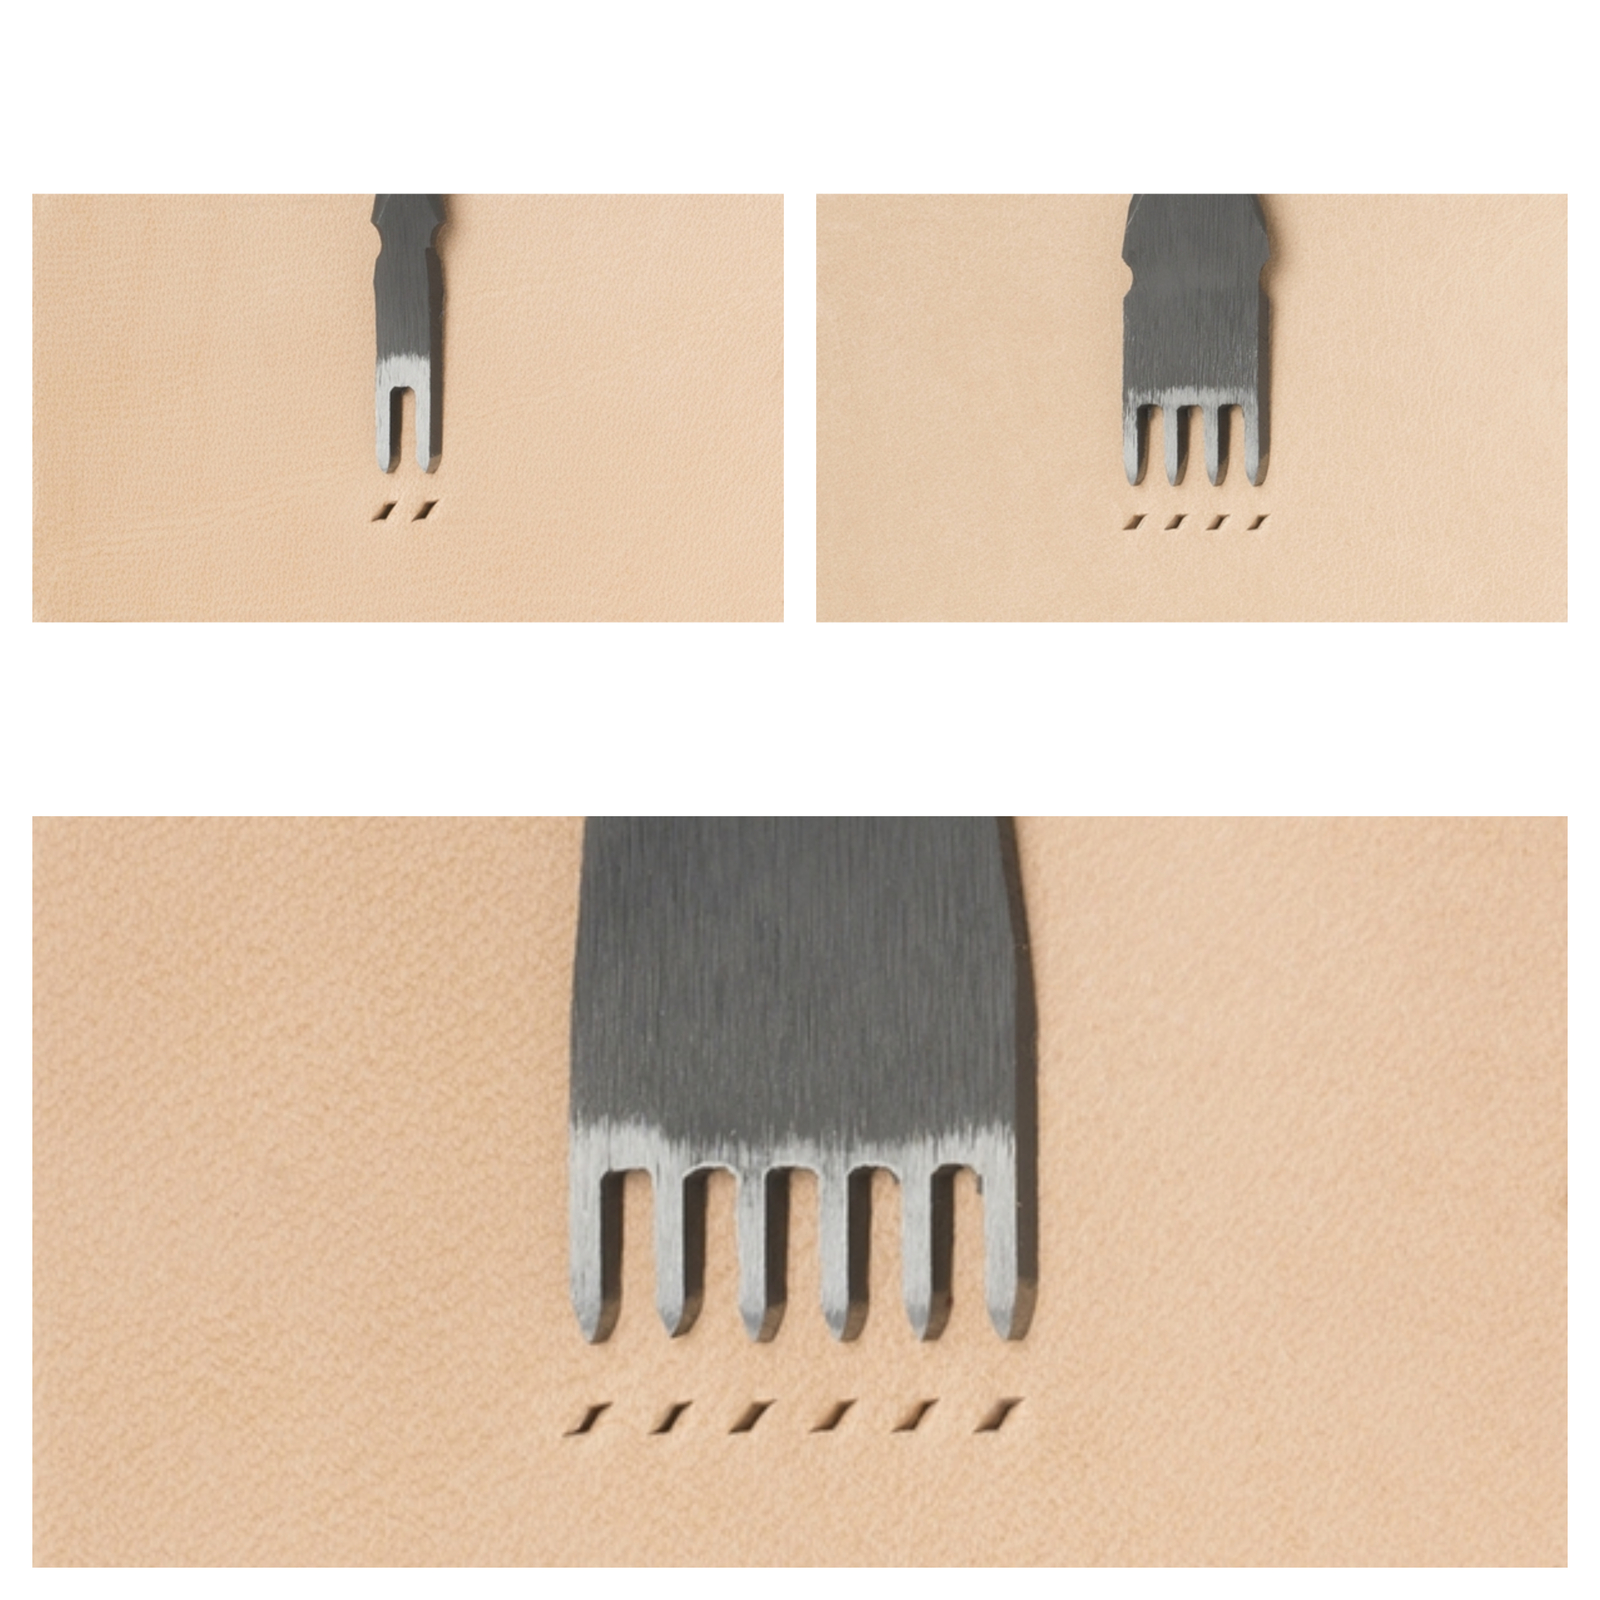 Japanese E European Style Chisel Width 1.2mm / Pitch 4mm